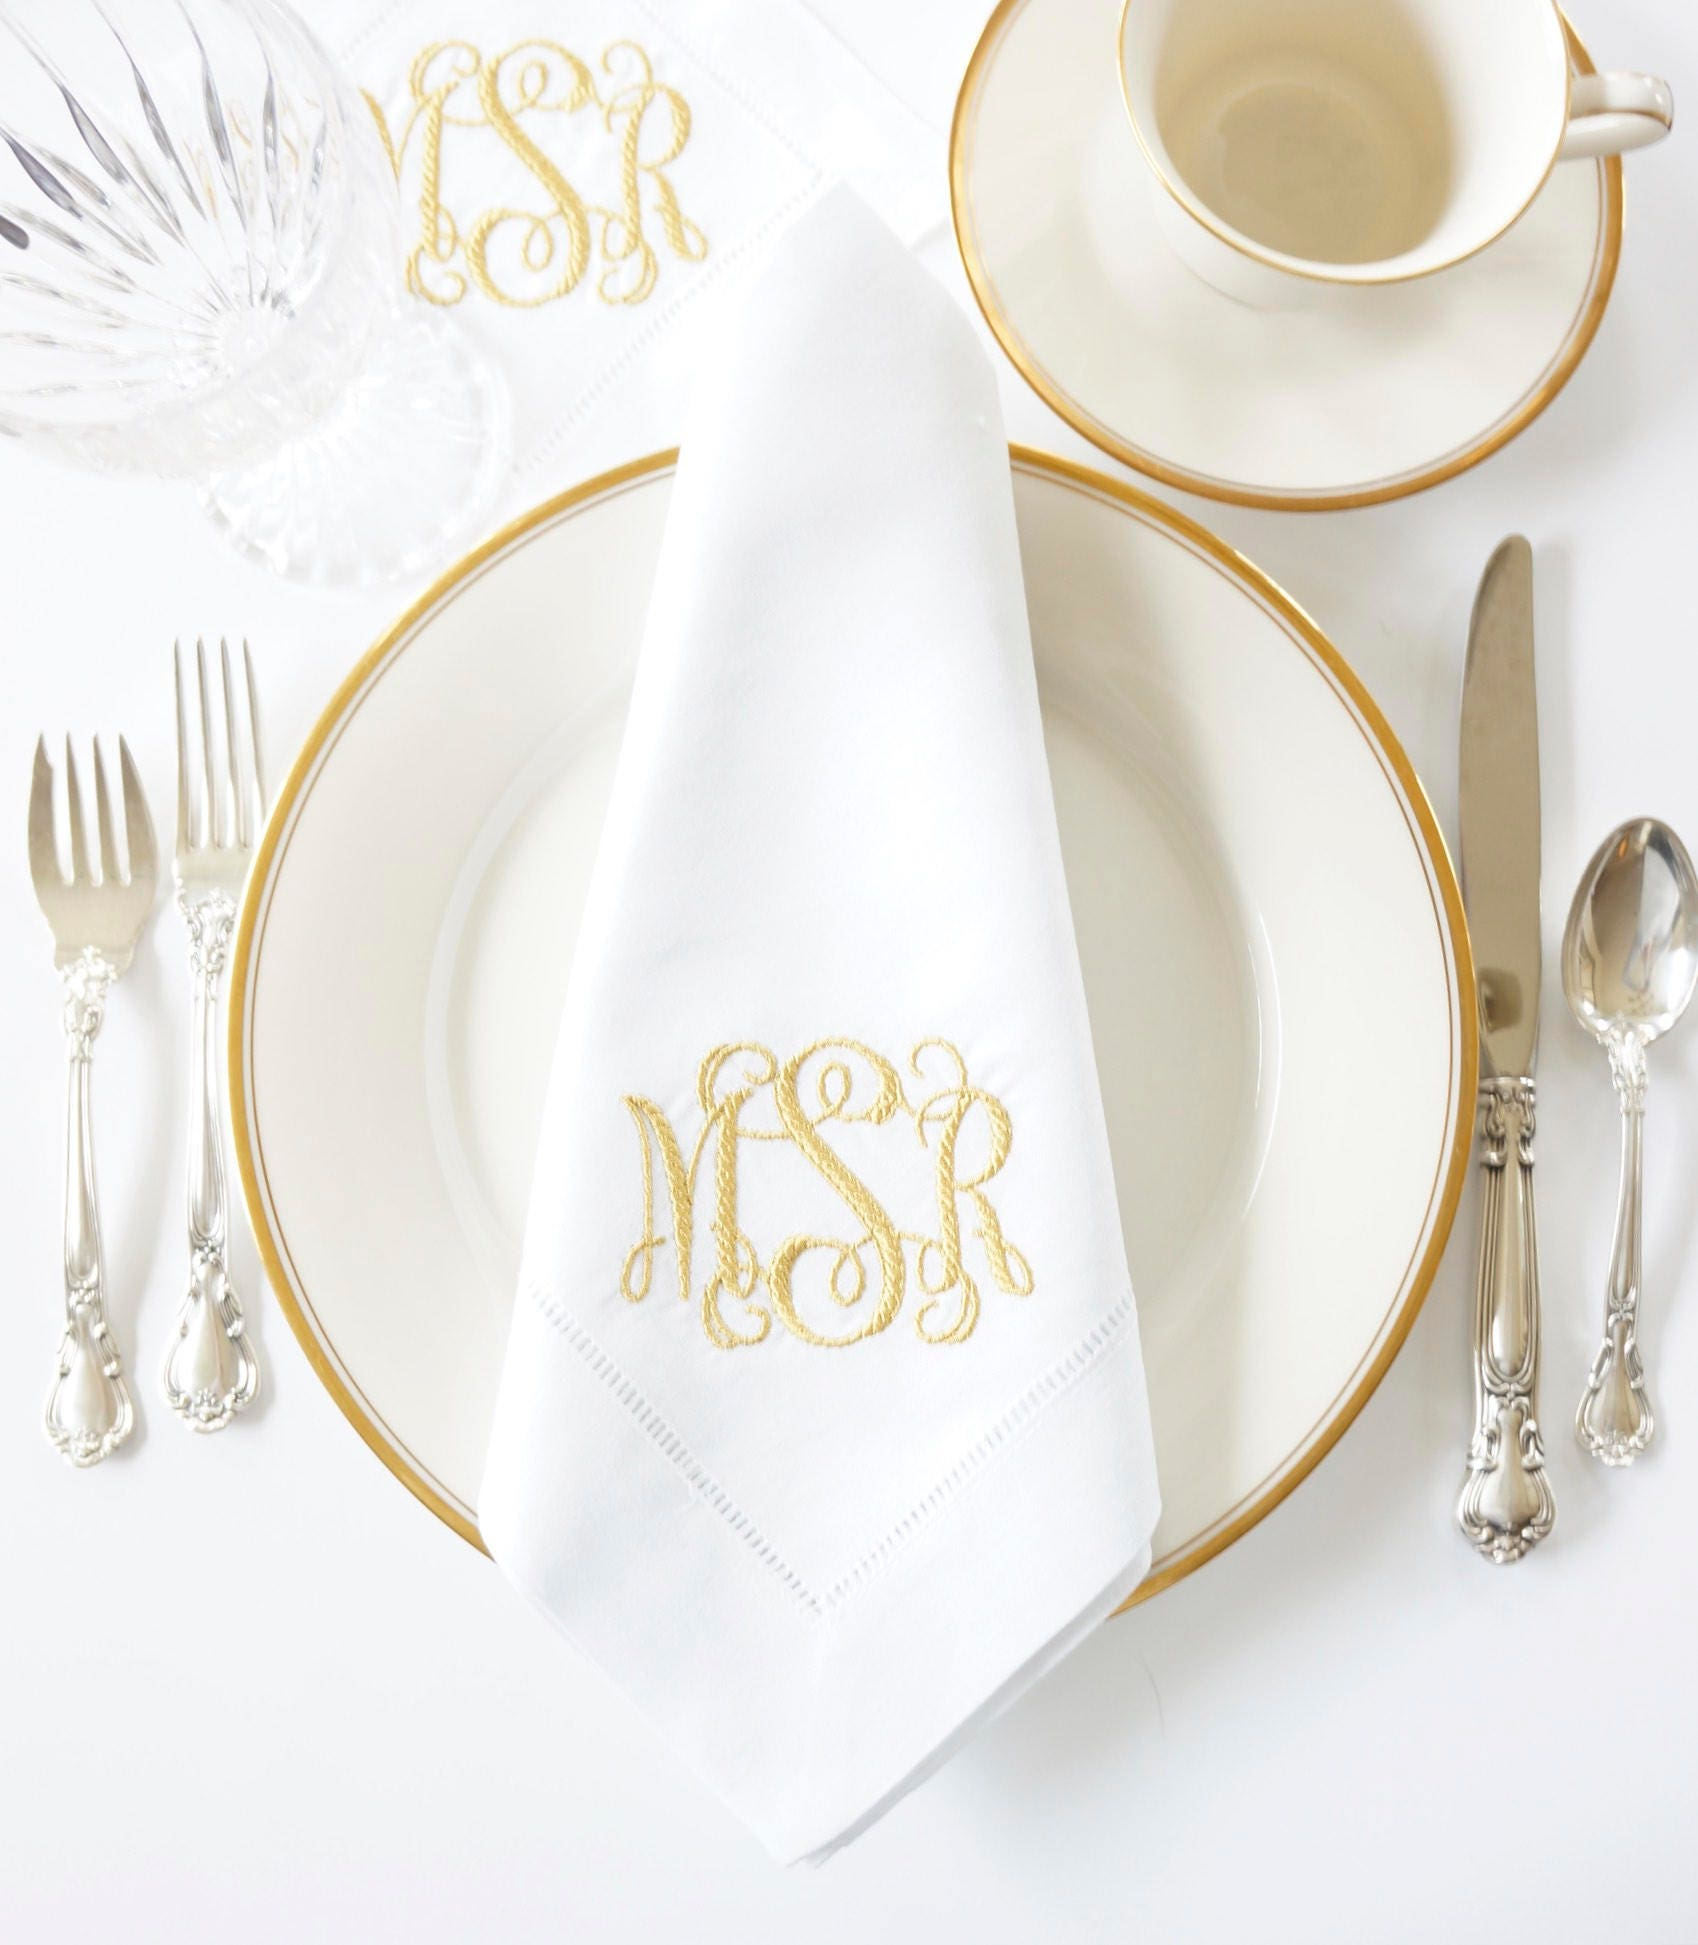 braided monogram embroidered dinner napkins guest hand towels table linens wedding keepsake for special occasions